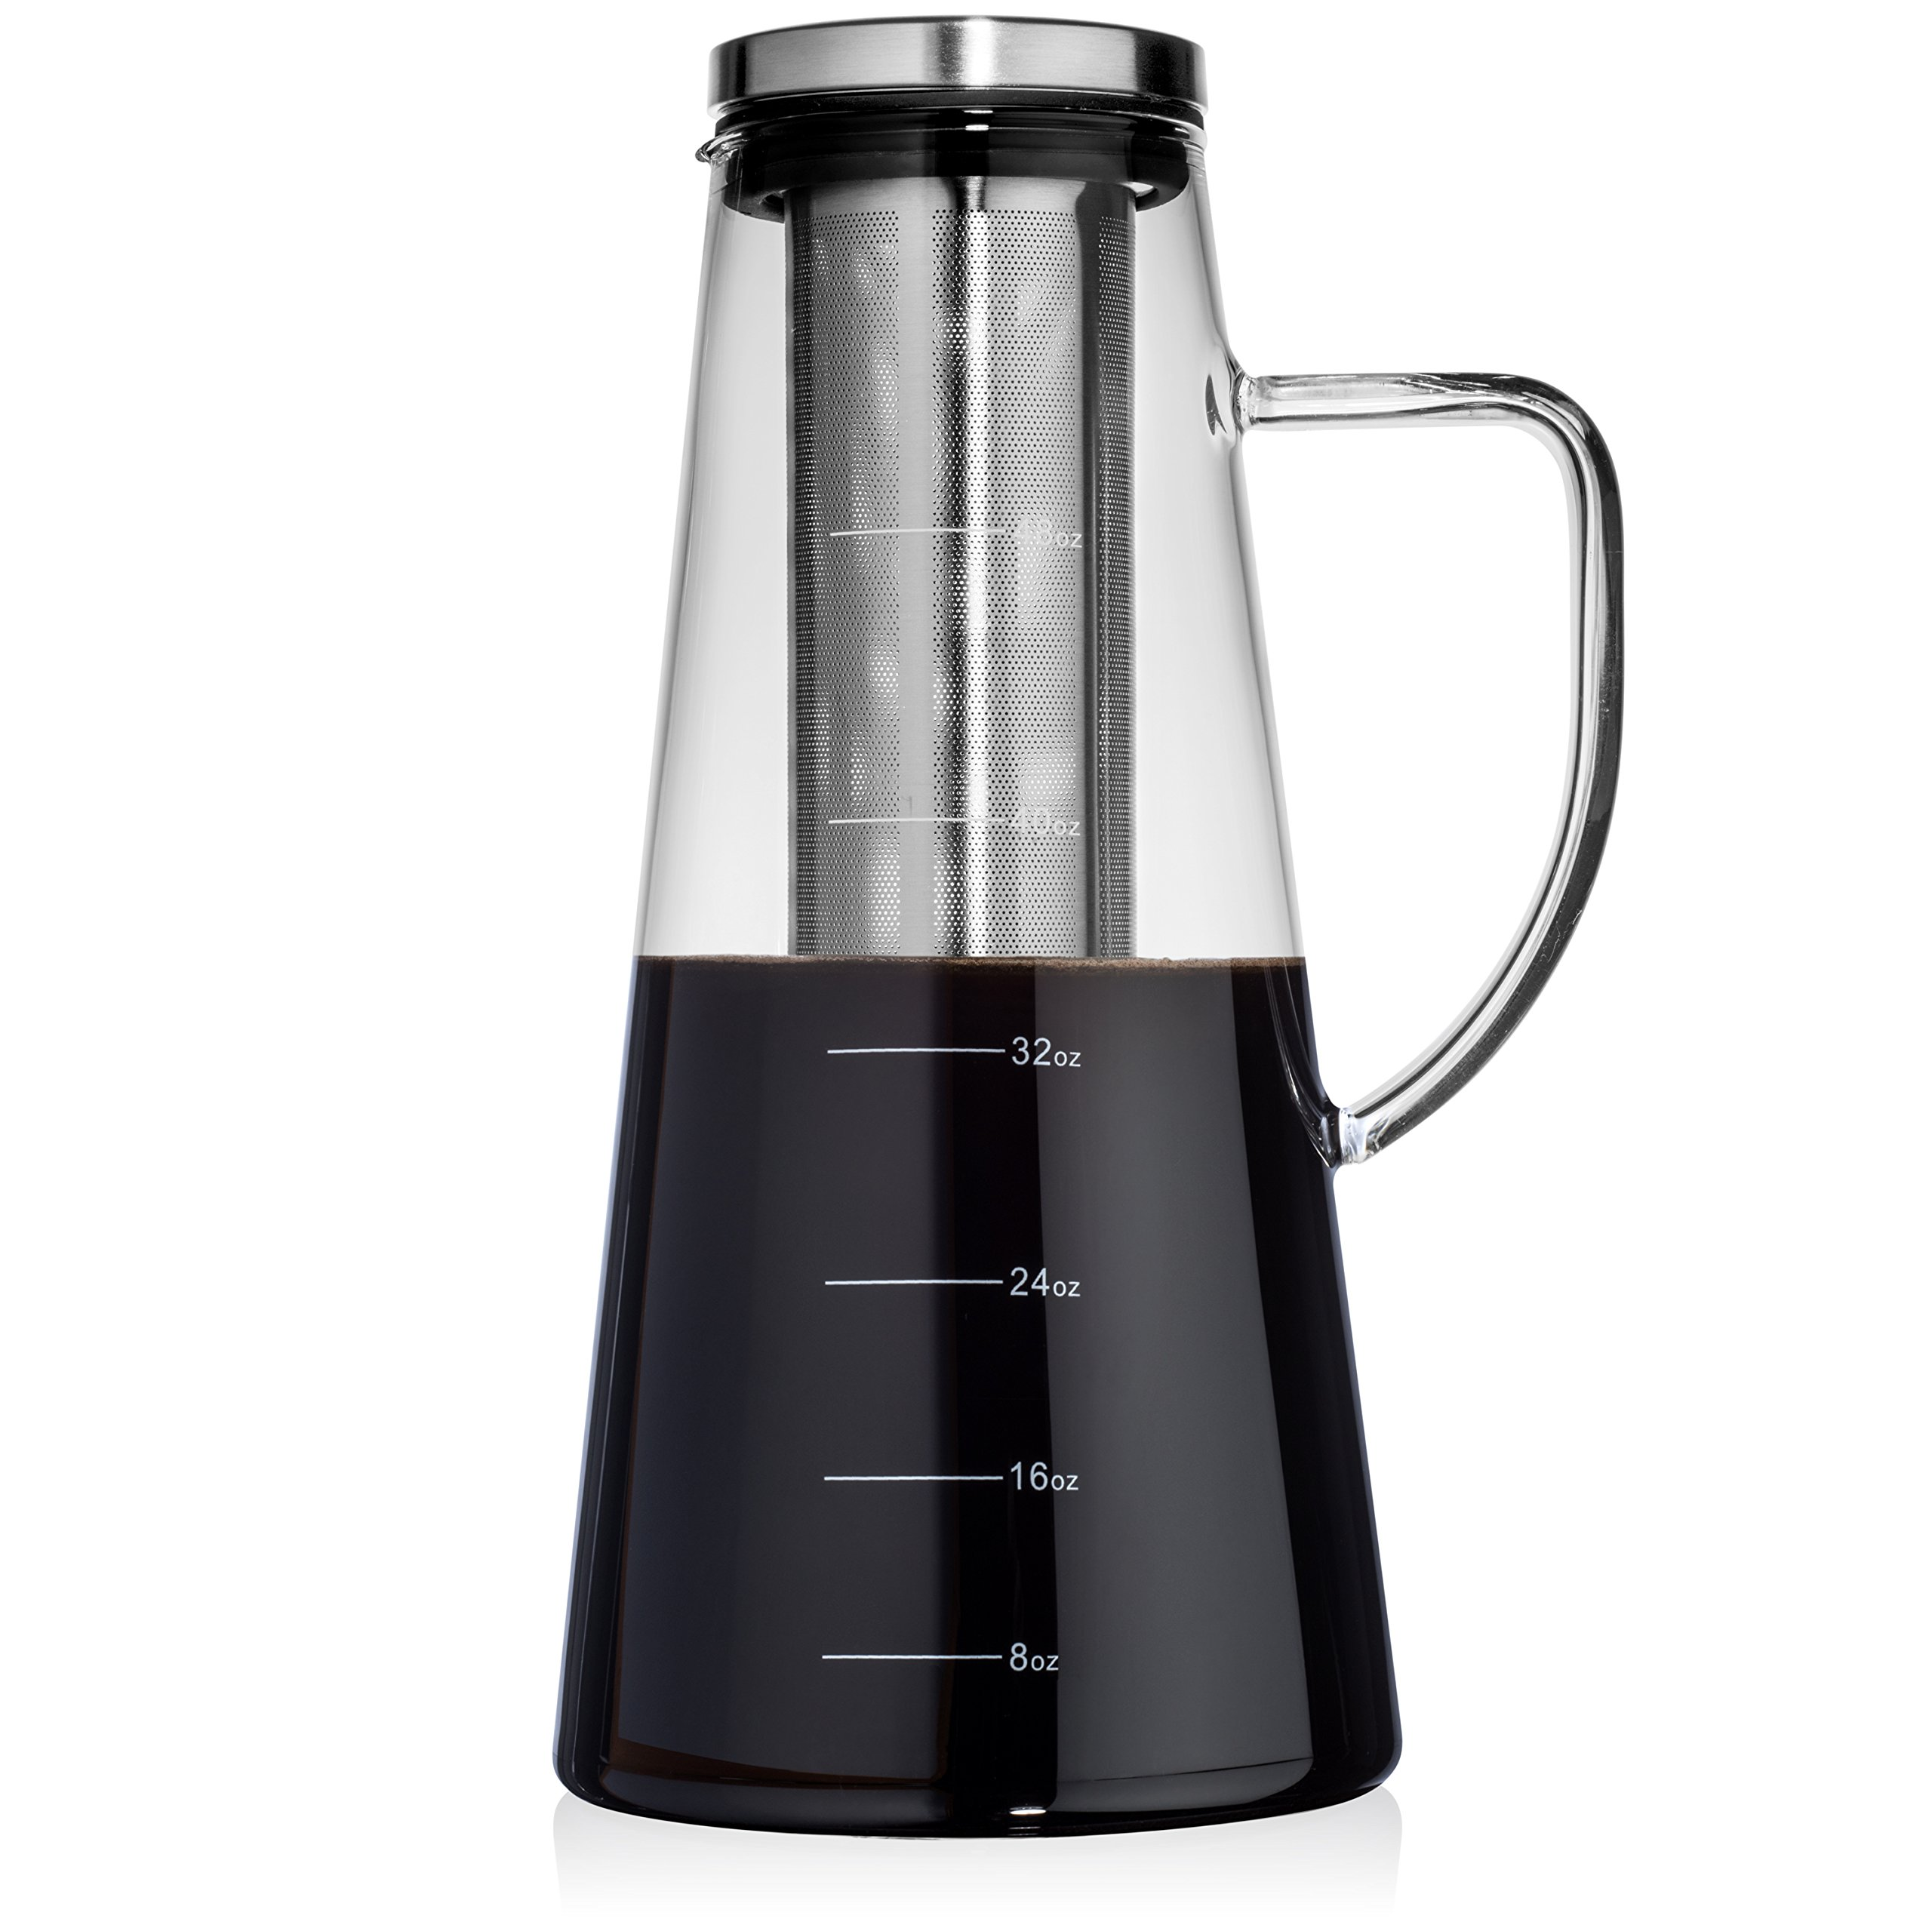 Large Cold Brew Coffee Maker, 1.5L/48oz Premium Quality Glass Carafe with Airtight Stainless Steel Lid Brews Hot or Iced Coffee & Tea, Removable Fine Mesh Filter/Fruit Infuser, Bonus Cleaning Sponge by Savvy Home